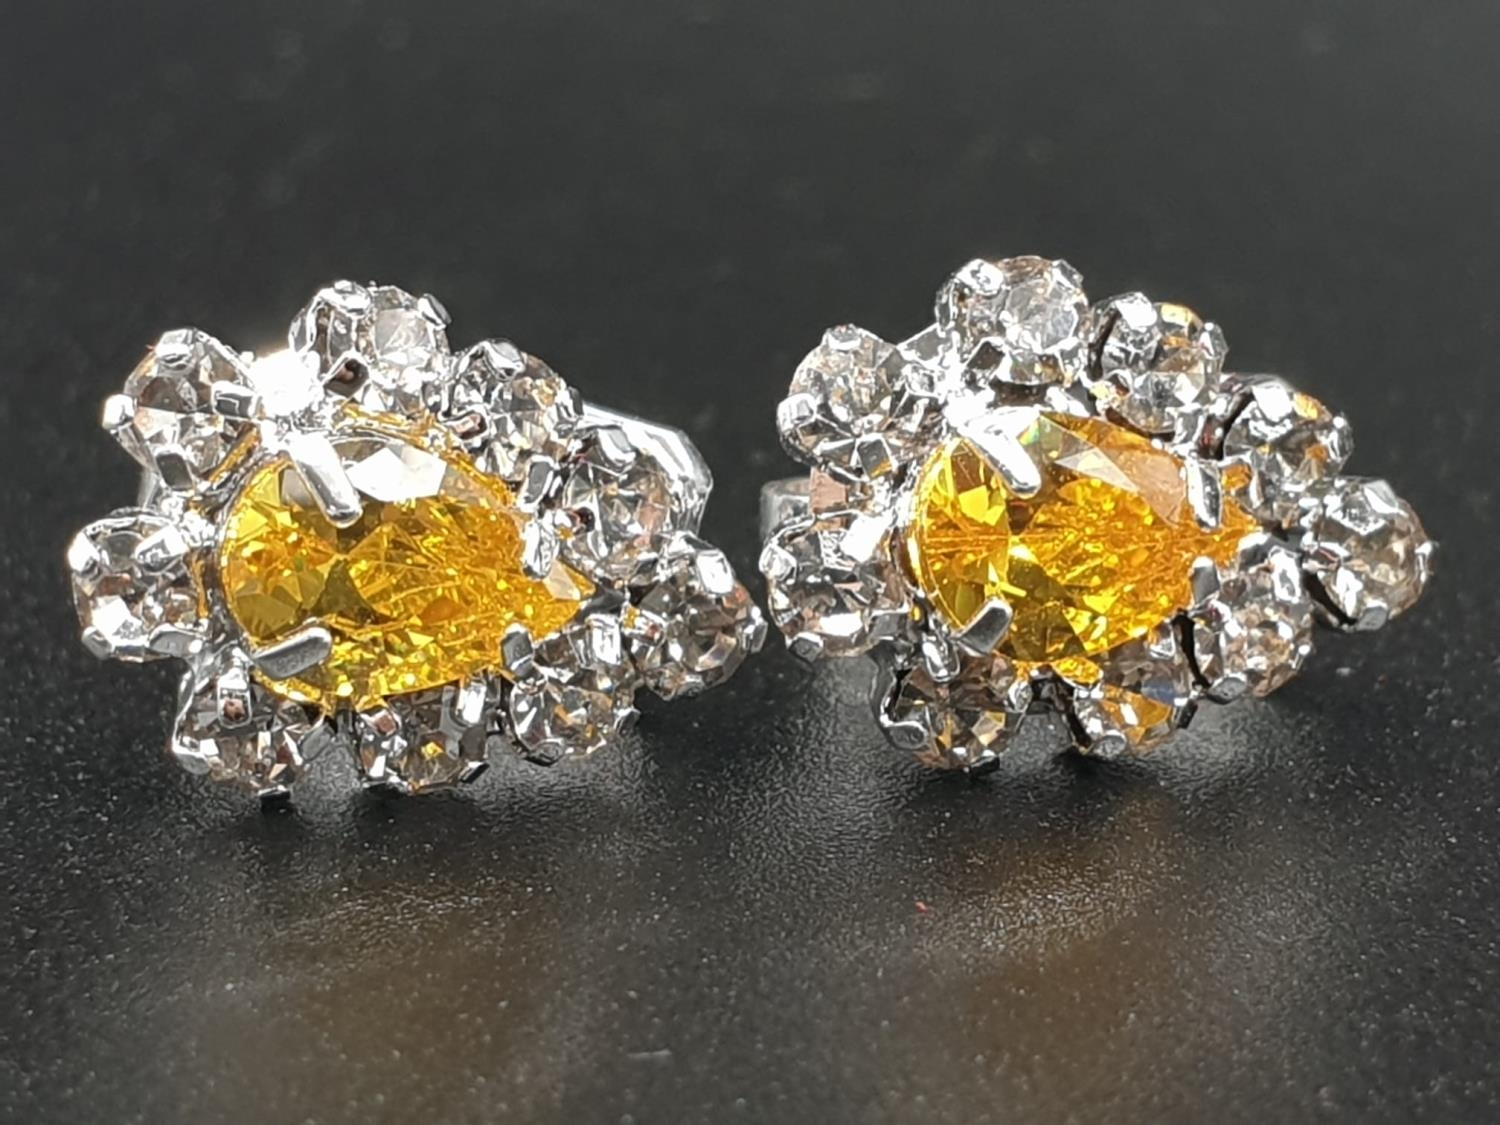 A white metal ring and earrings set with yellow topaz and clear sapphires. Ring size: N. Presented - Image 8 of 12